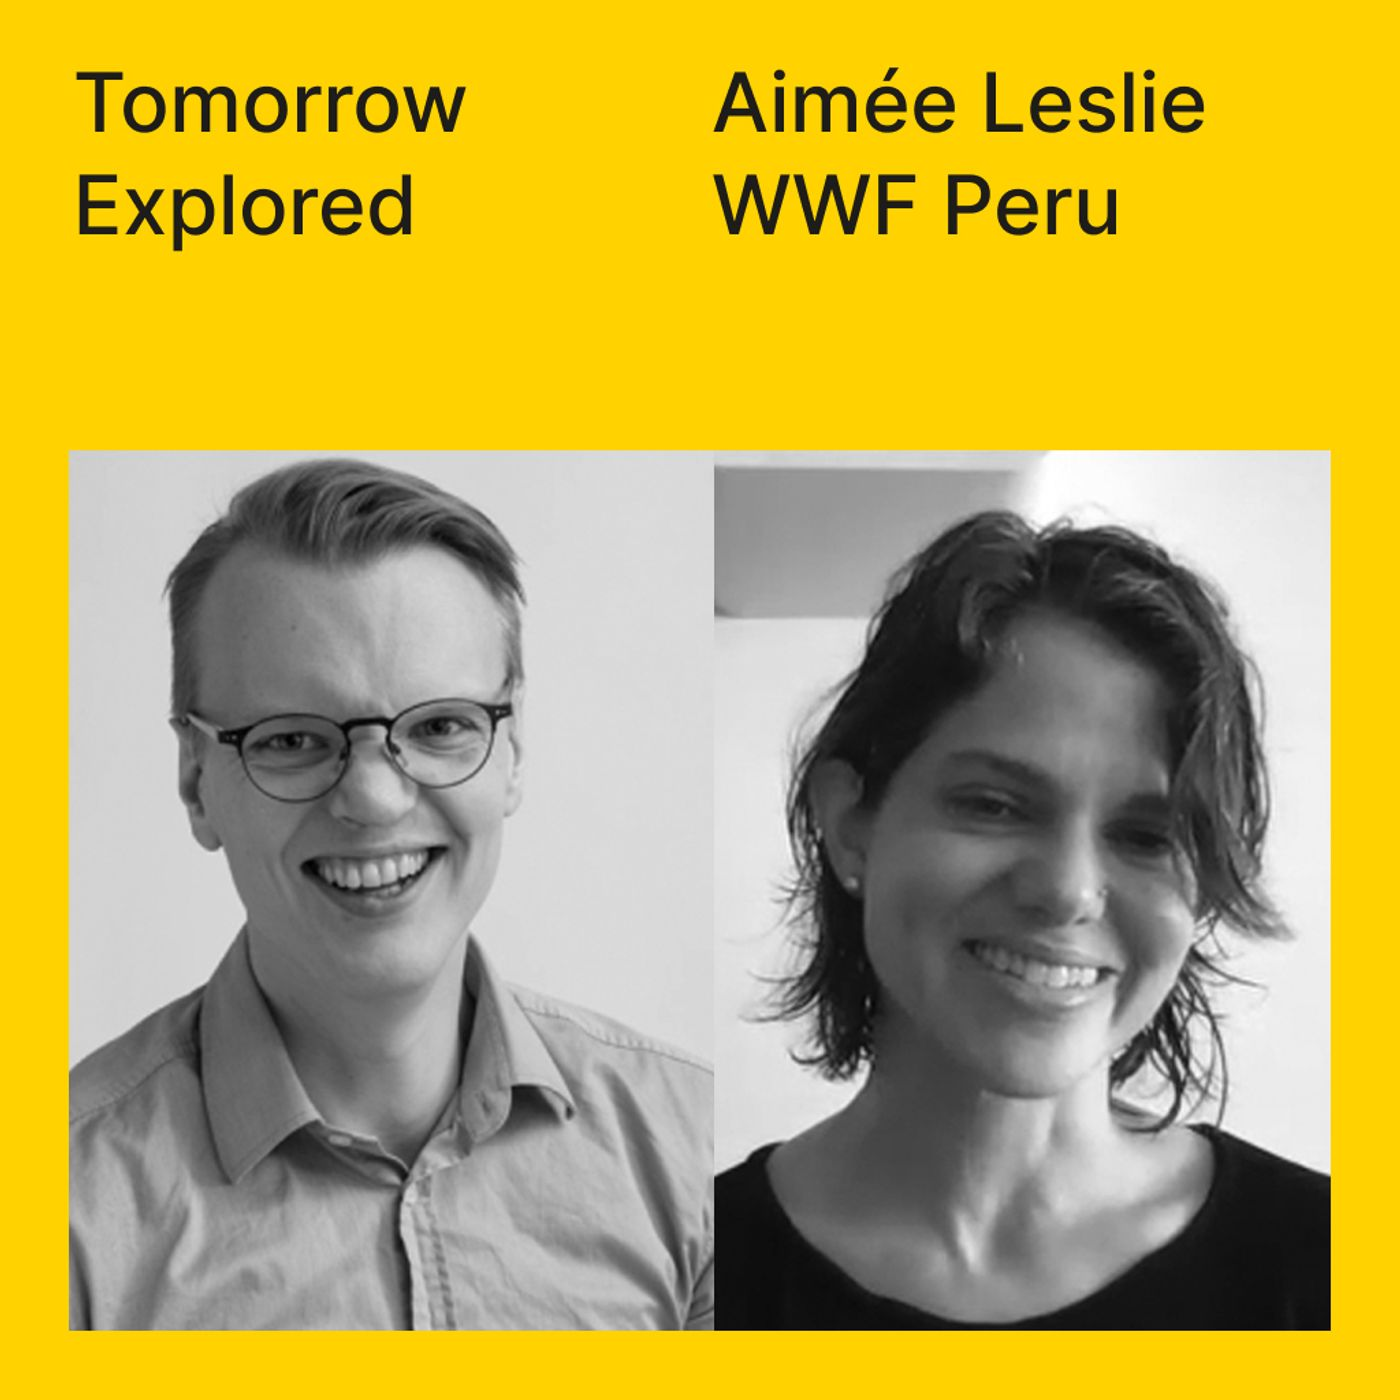 Seafood traceability in Peru, with Aimée Leslie of WWF